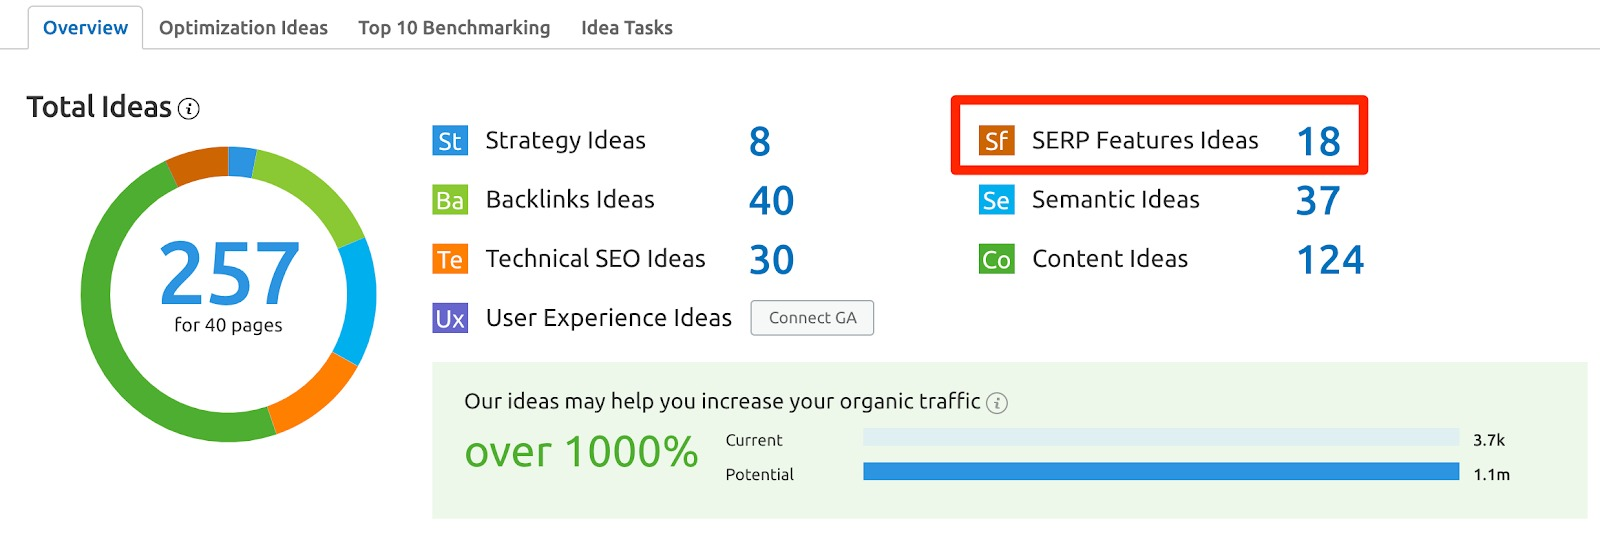 What Semrush Tools Can I Use to Research SERP Features? image 5